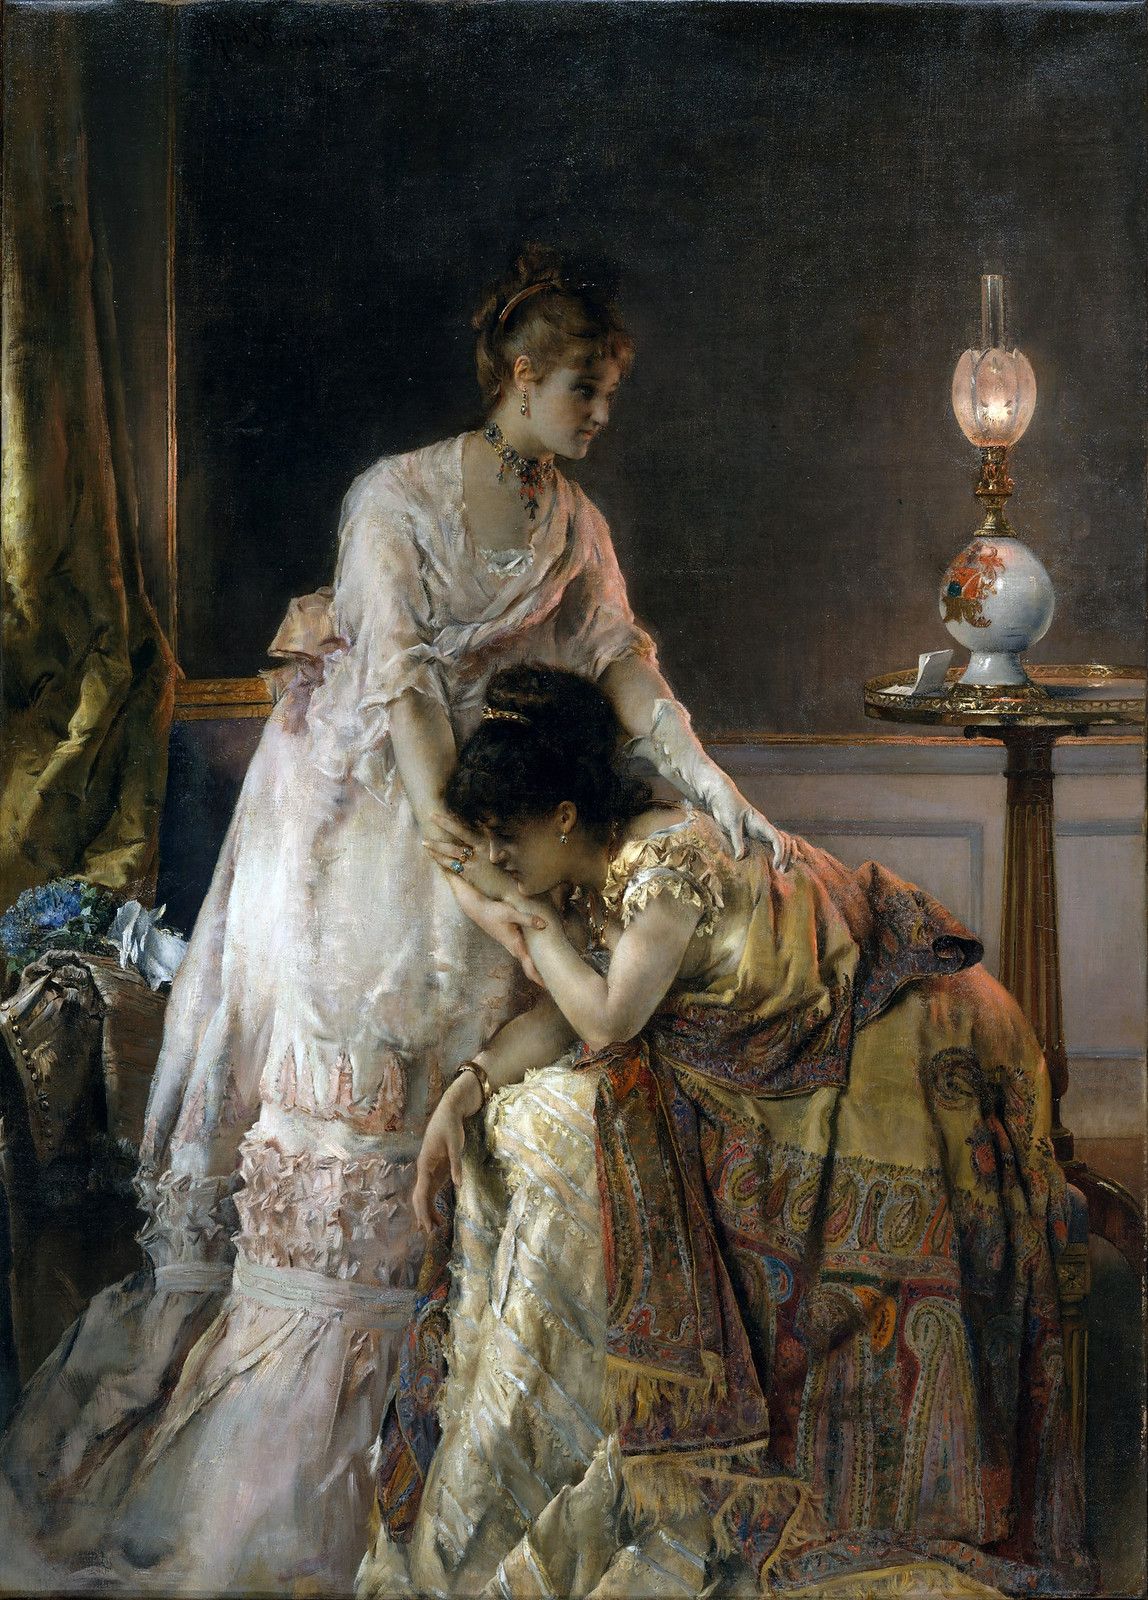 After the Ball by Alfred Stevens, 1873